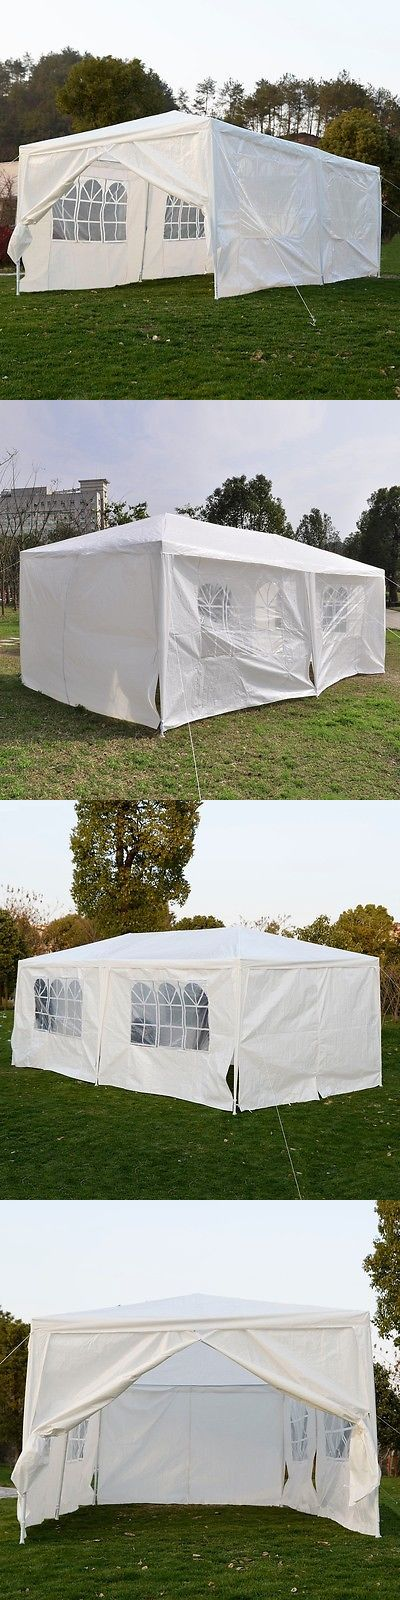 Other Tents and Canopies 179019: Outdoor 10X20 Canopy Party Wedding Tent Heavy Duty Gazebo Cater Events White BUY IT NOW ONLY: $93.99